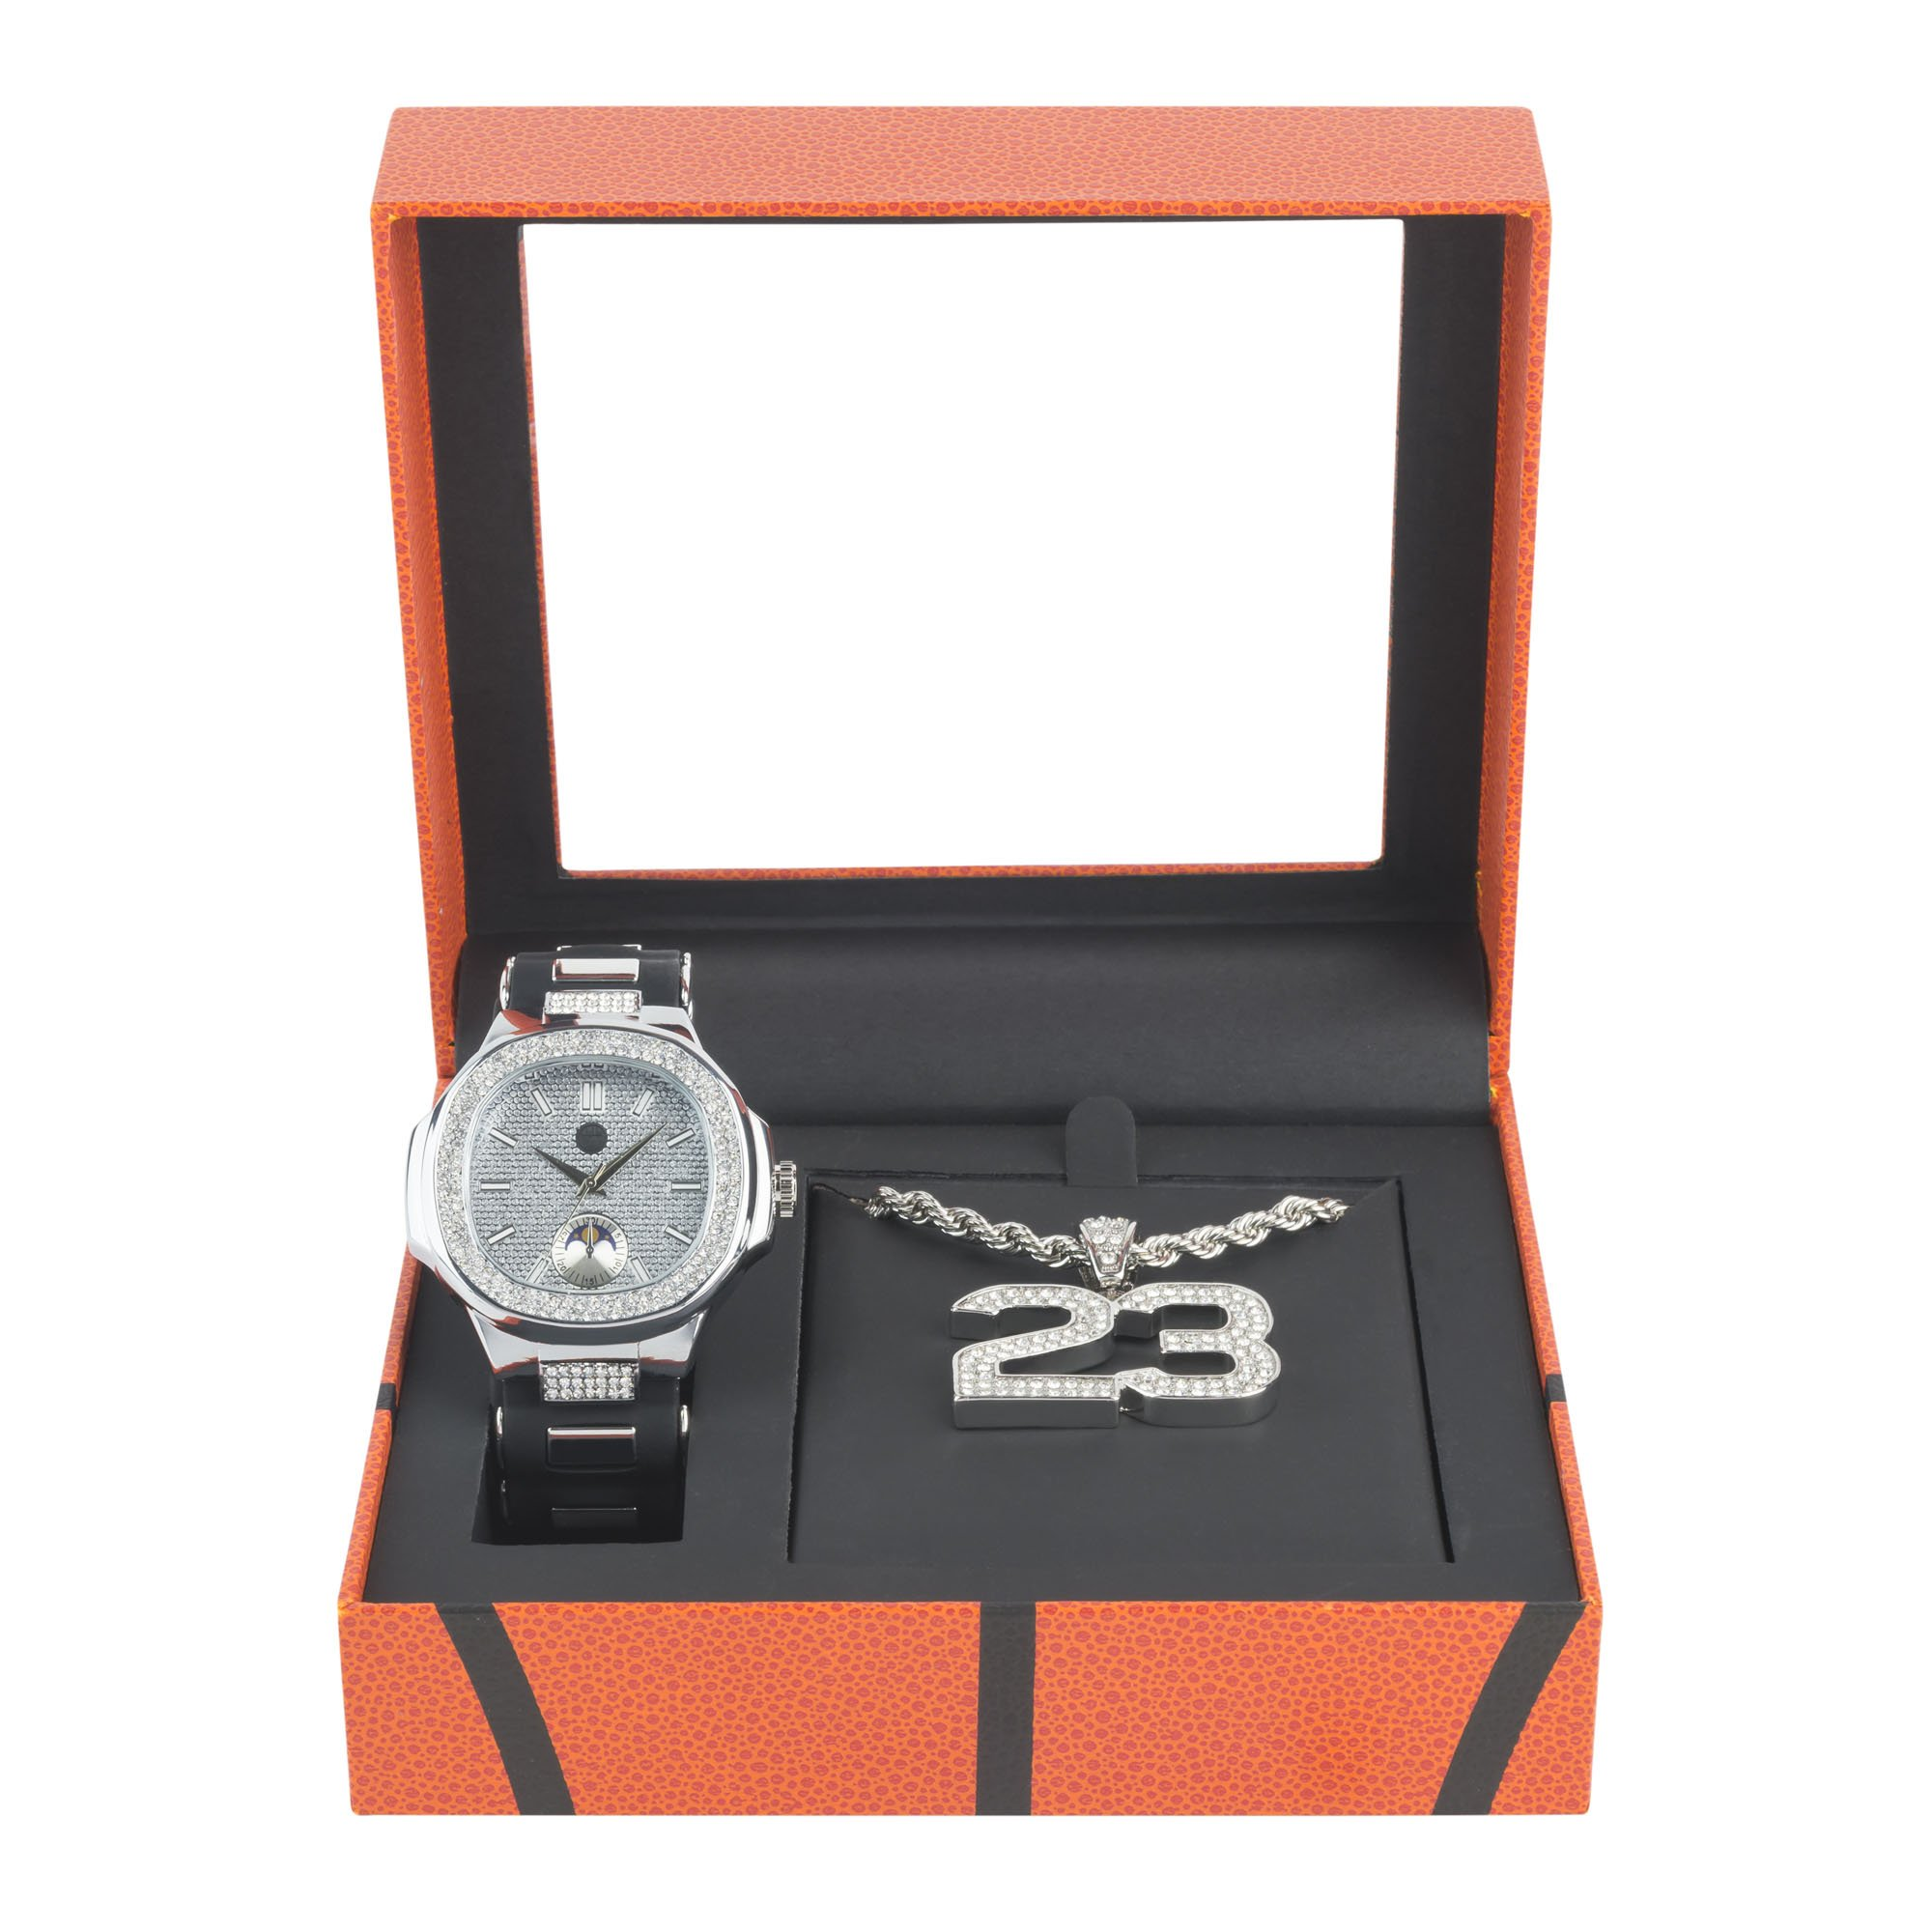 Men's Hip Hop Silver Watch and Iced Out 23 Basketball Pendant with Chain Gift Set